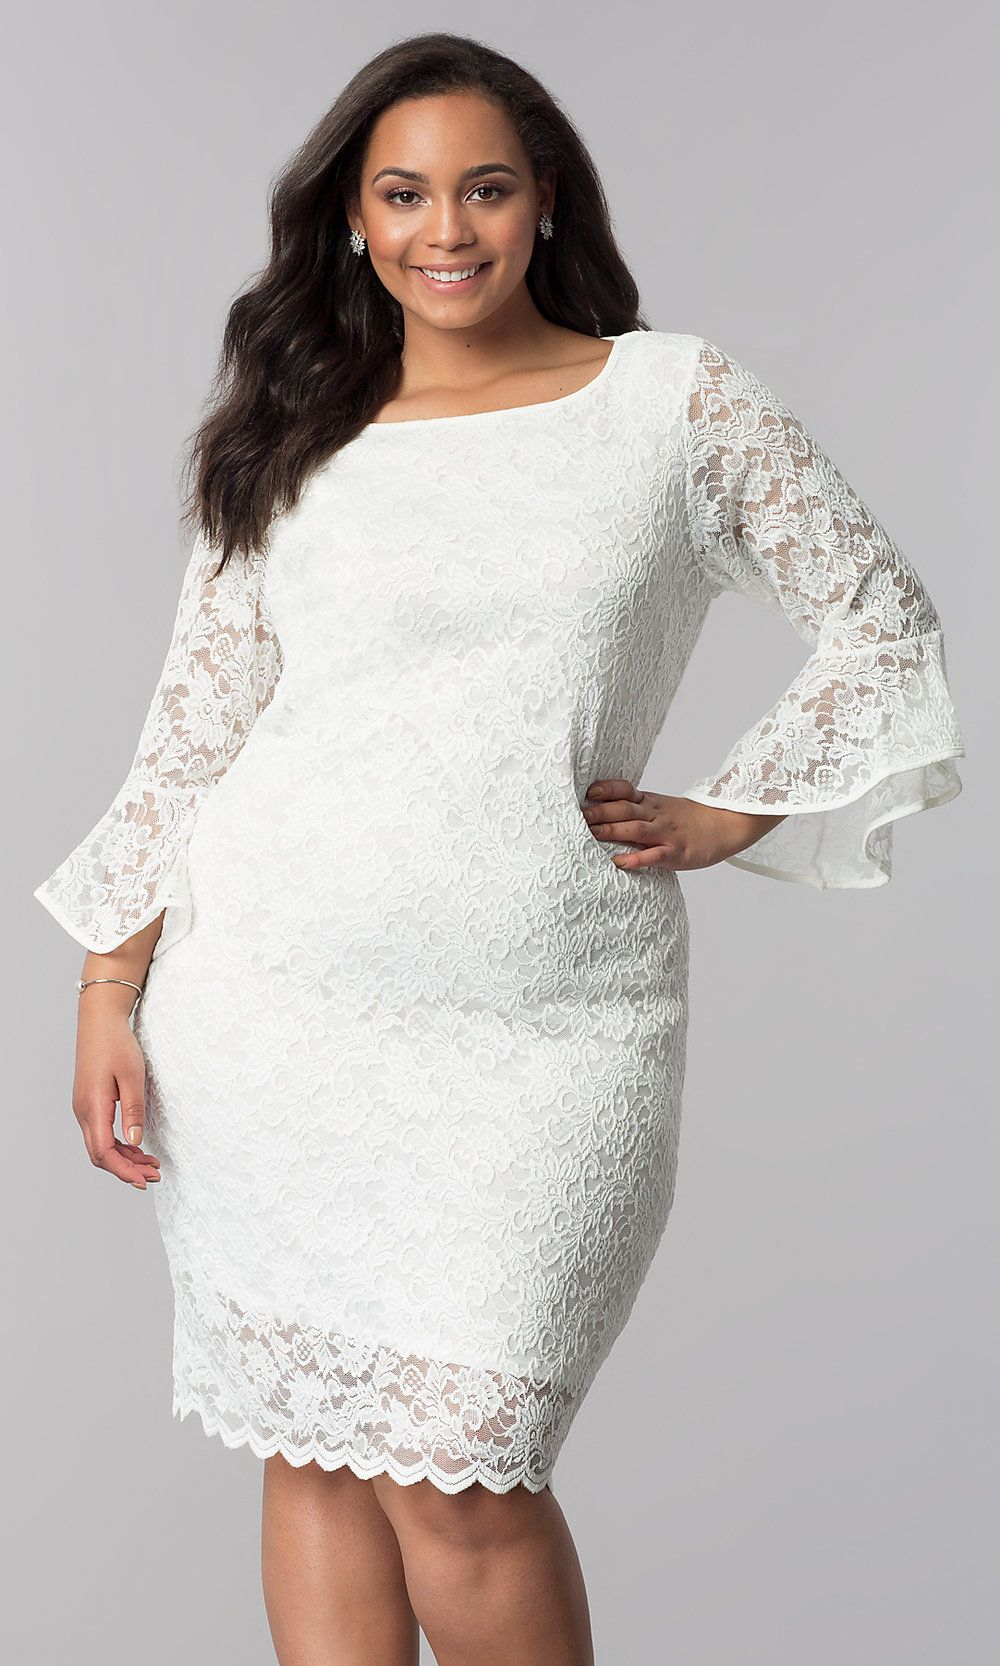 11+ White lace party dress information